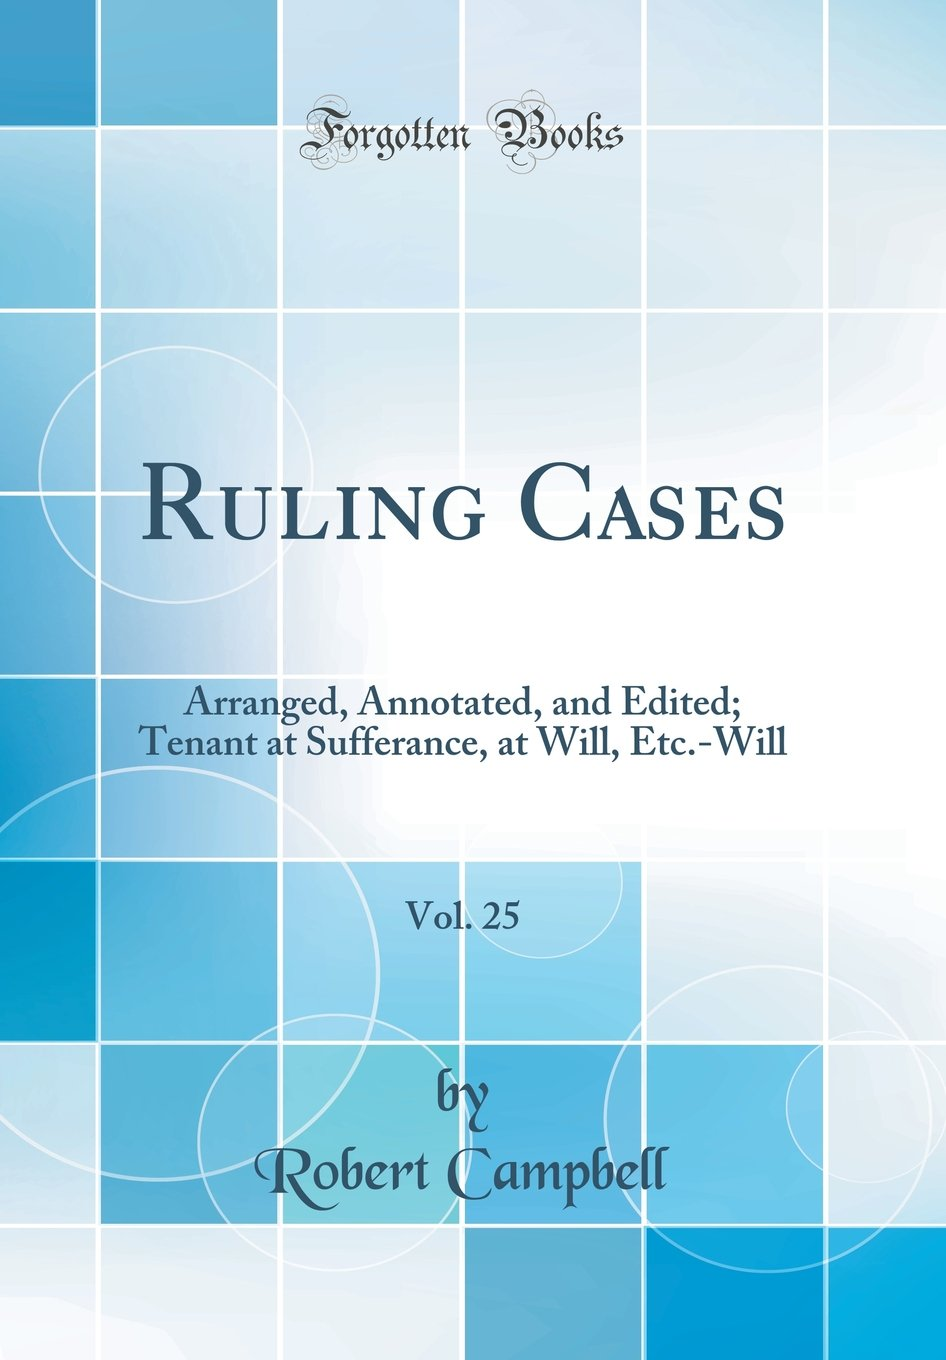 Download Ruling Cases, Vol. 25: Arranged, Annotated, and Edited; Tenant at Sufferance, at Will, Etc.-Will (Classic Reprint) pdf